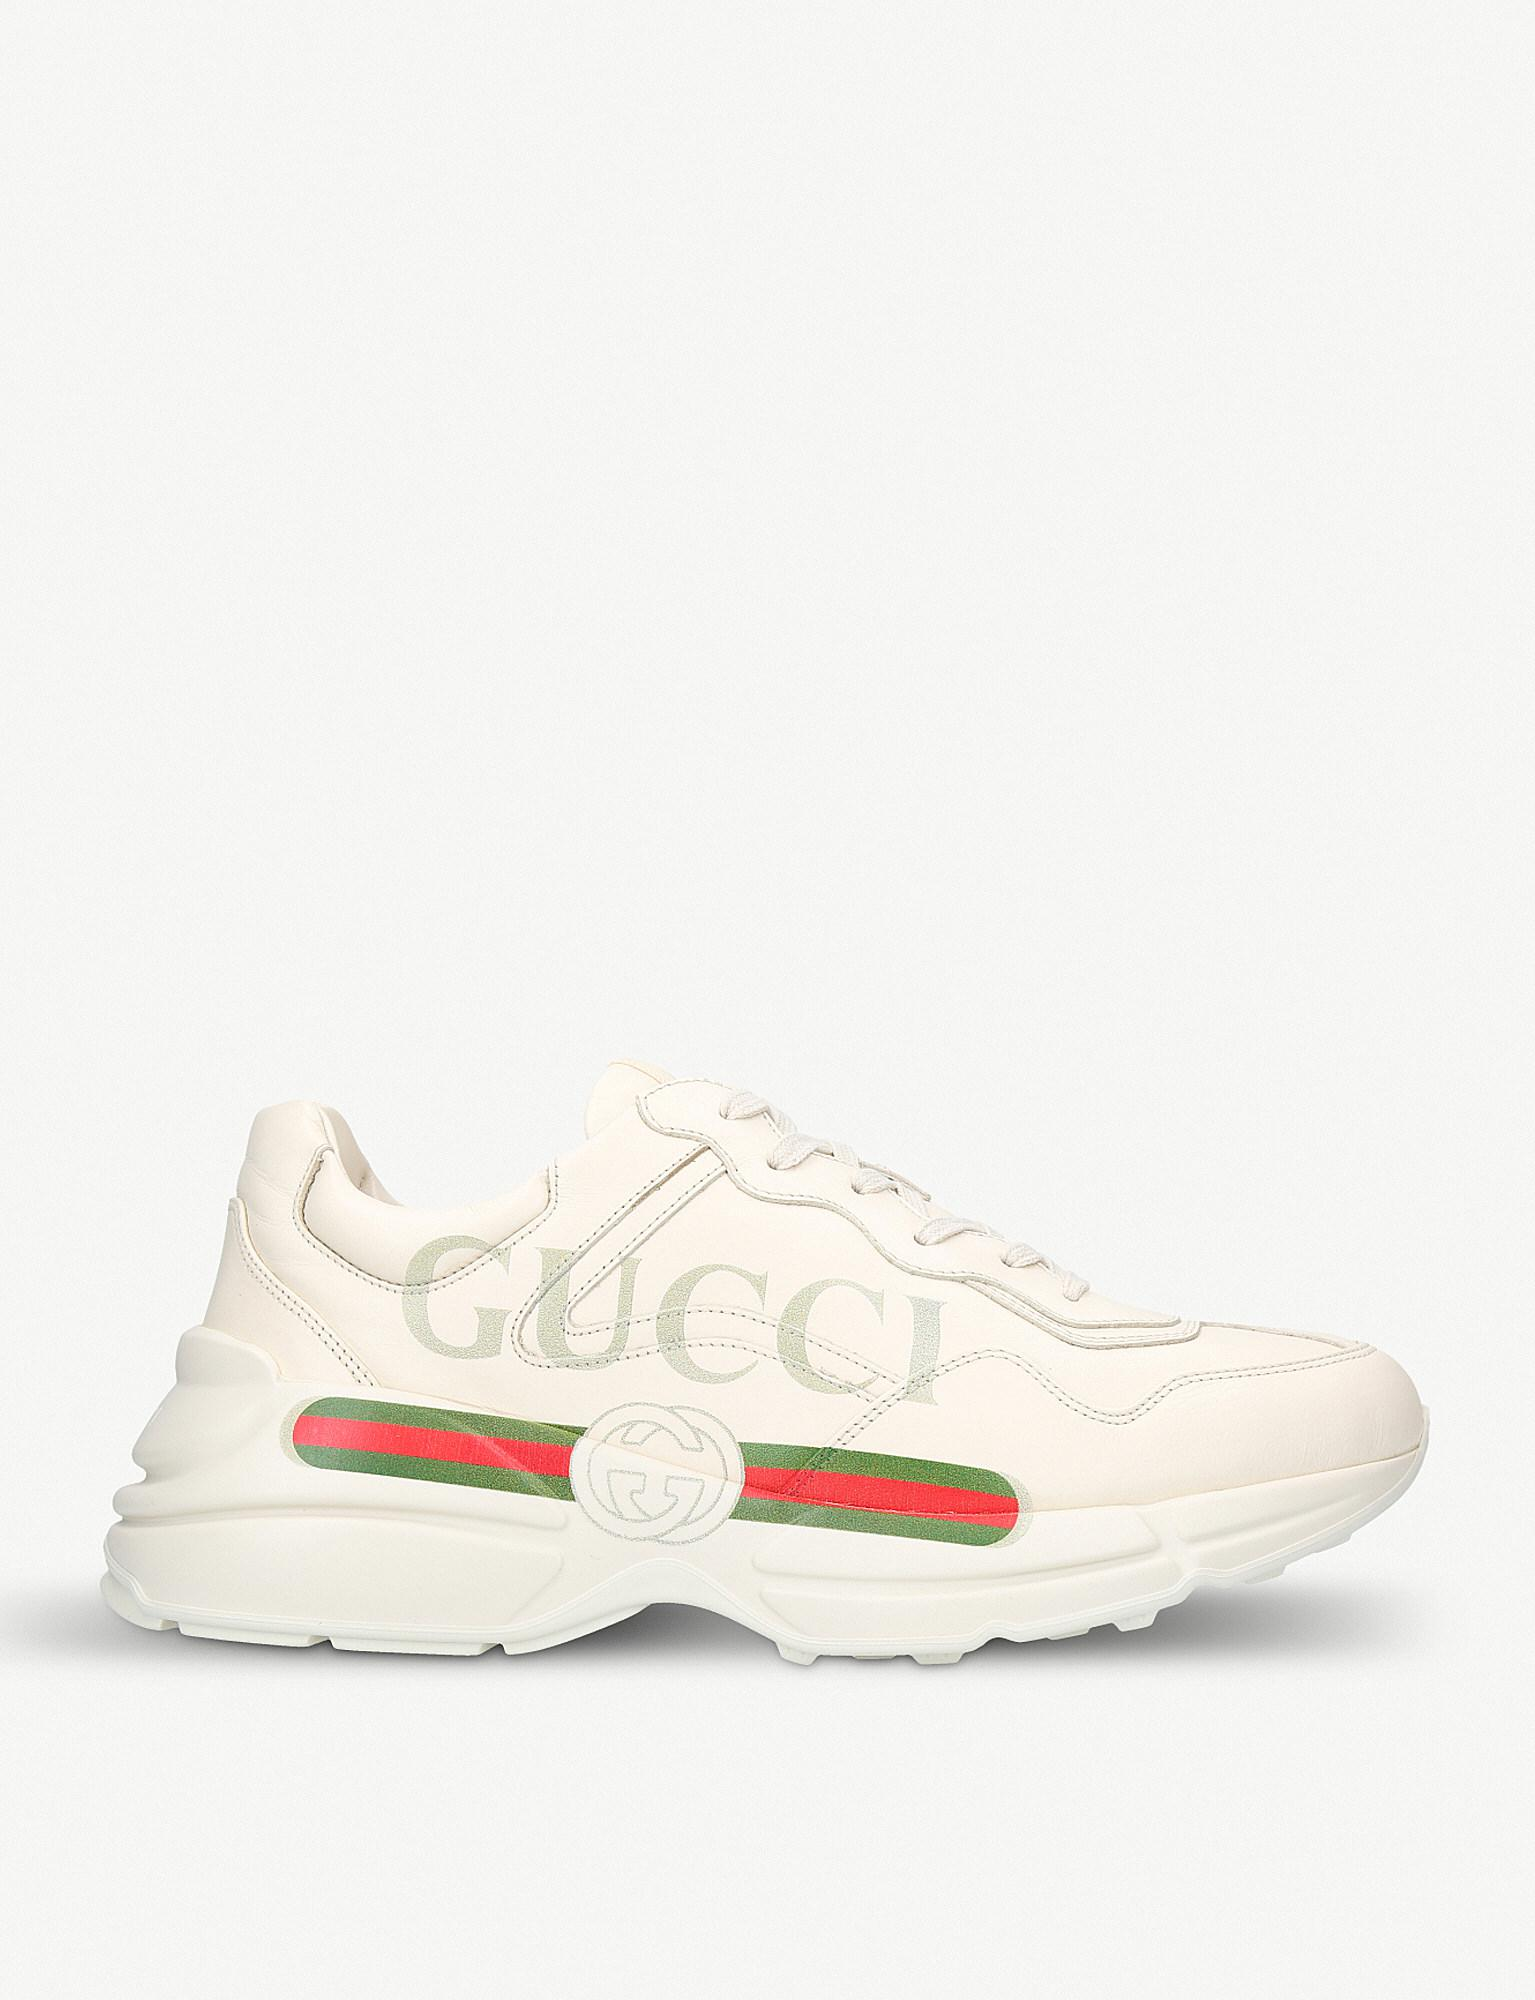 4f7cba30b0c Lyst - Gucci White Rhyton Oversized Leather Sneakers in White for ...